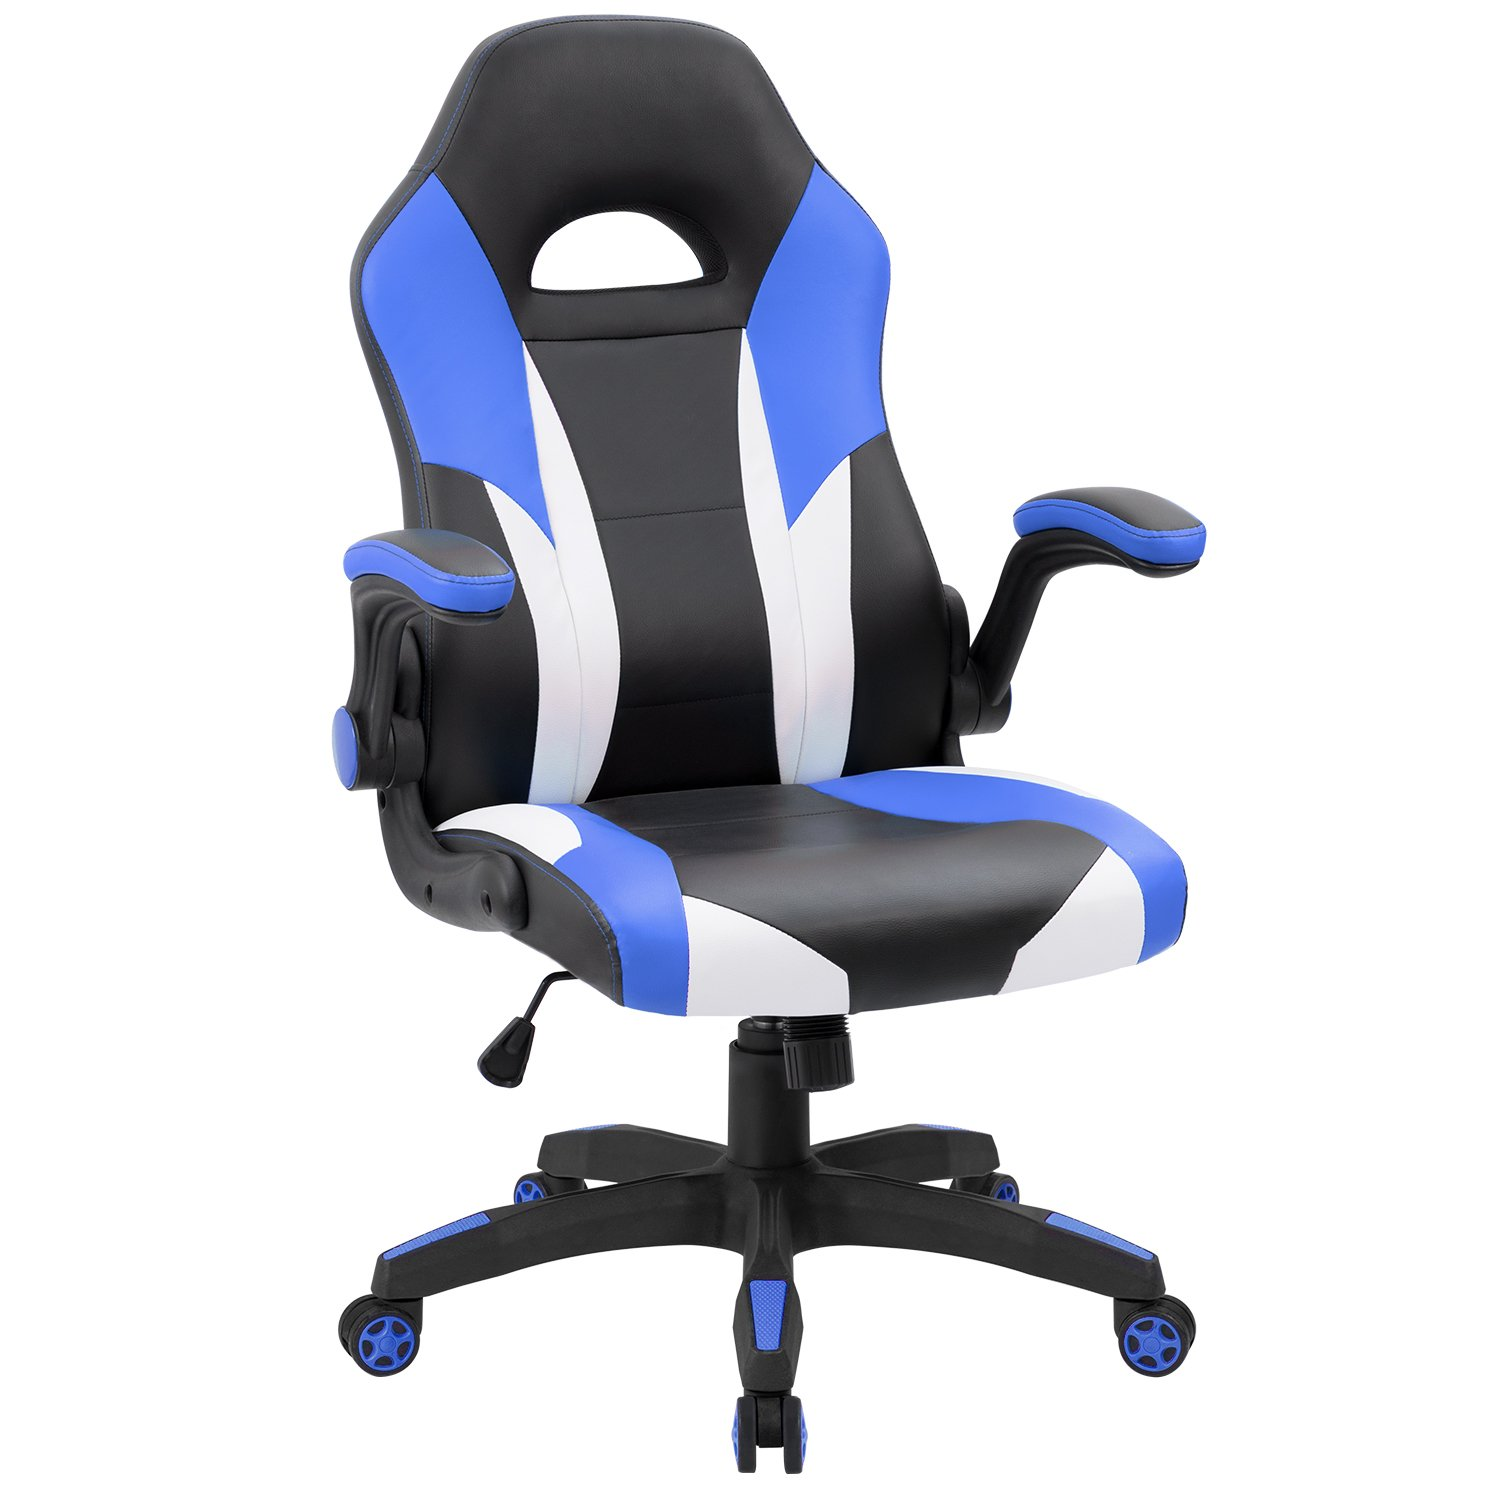 JUMMICO Gaming Chair Ergonomic Leather Racing Computer Chair High Back Adjustable Swivel Executive Office Desk Chair with Flip-Up Armrest (Blue) by JUMMICO